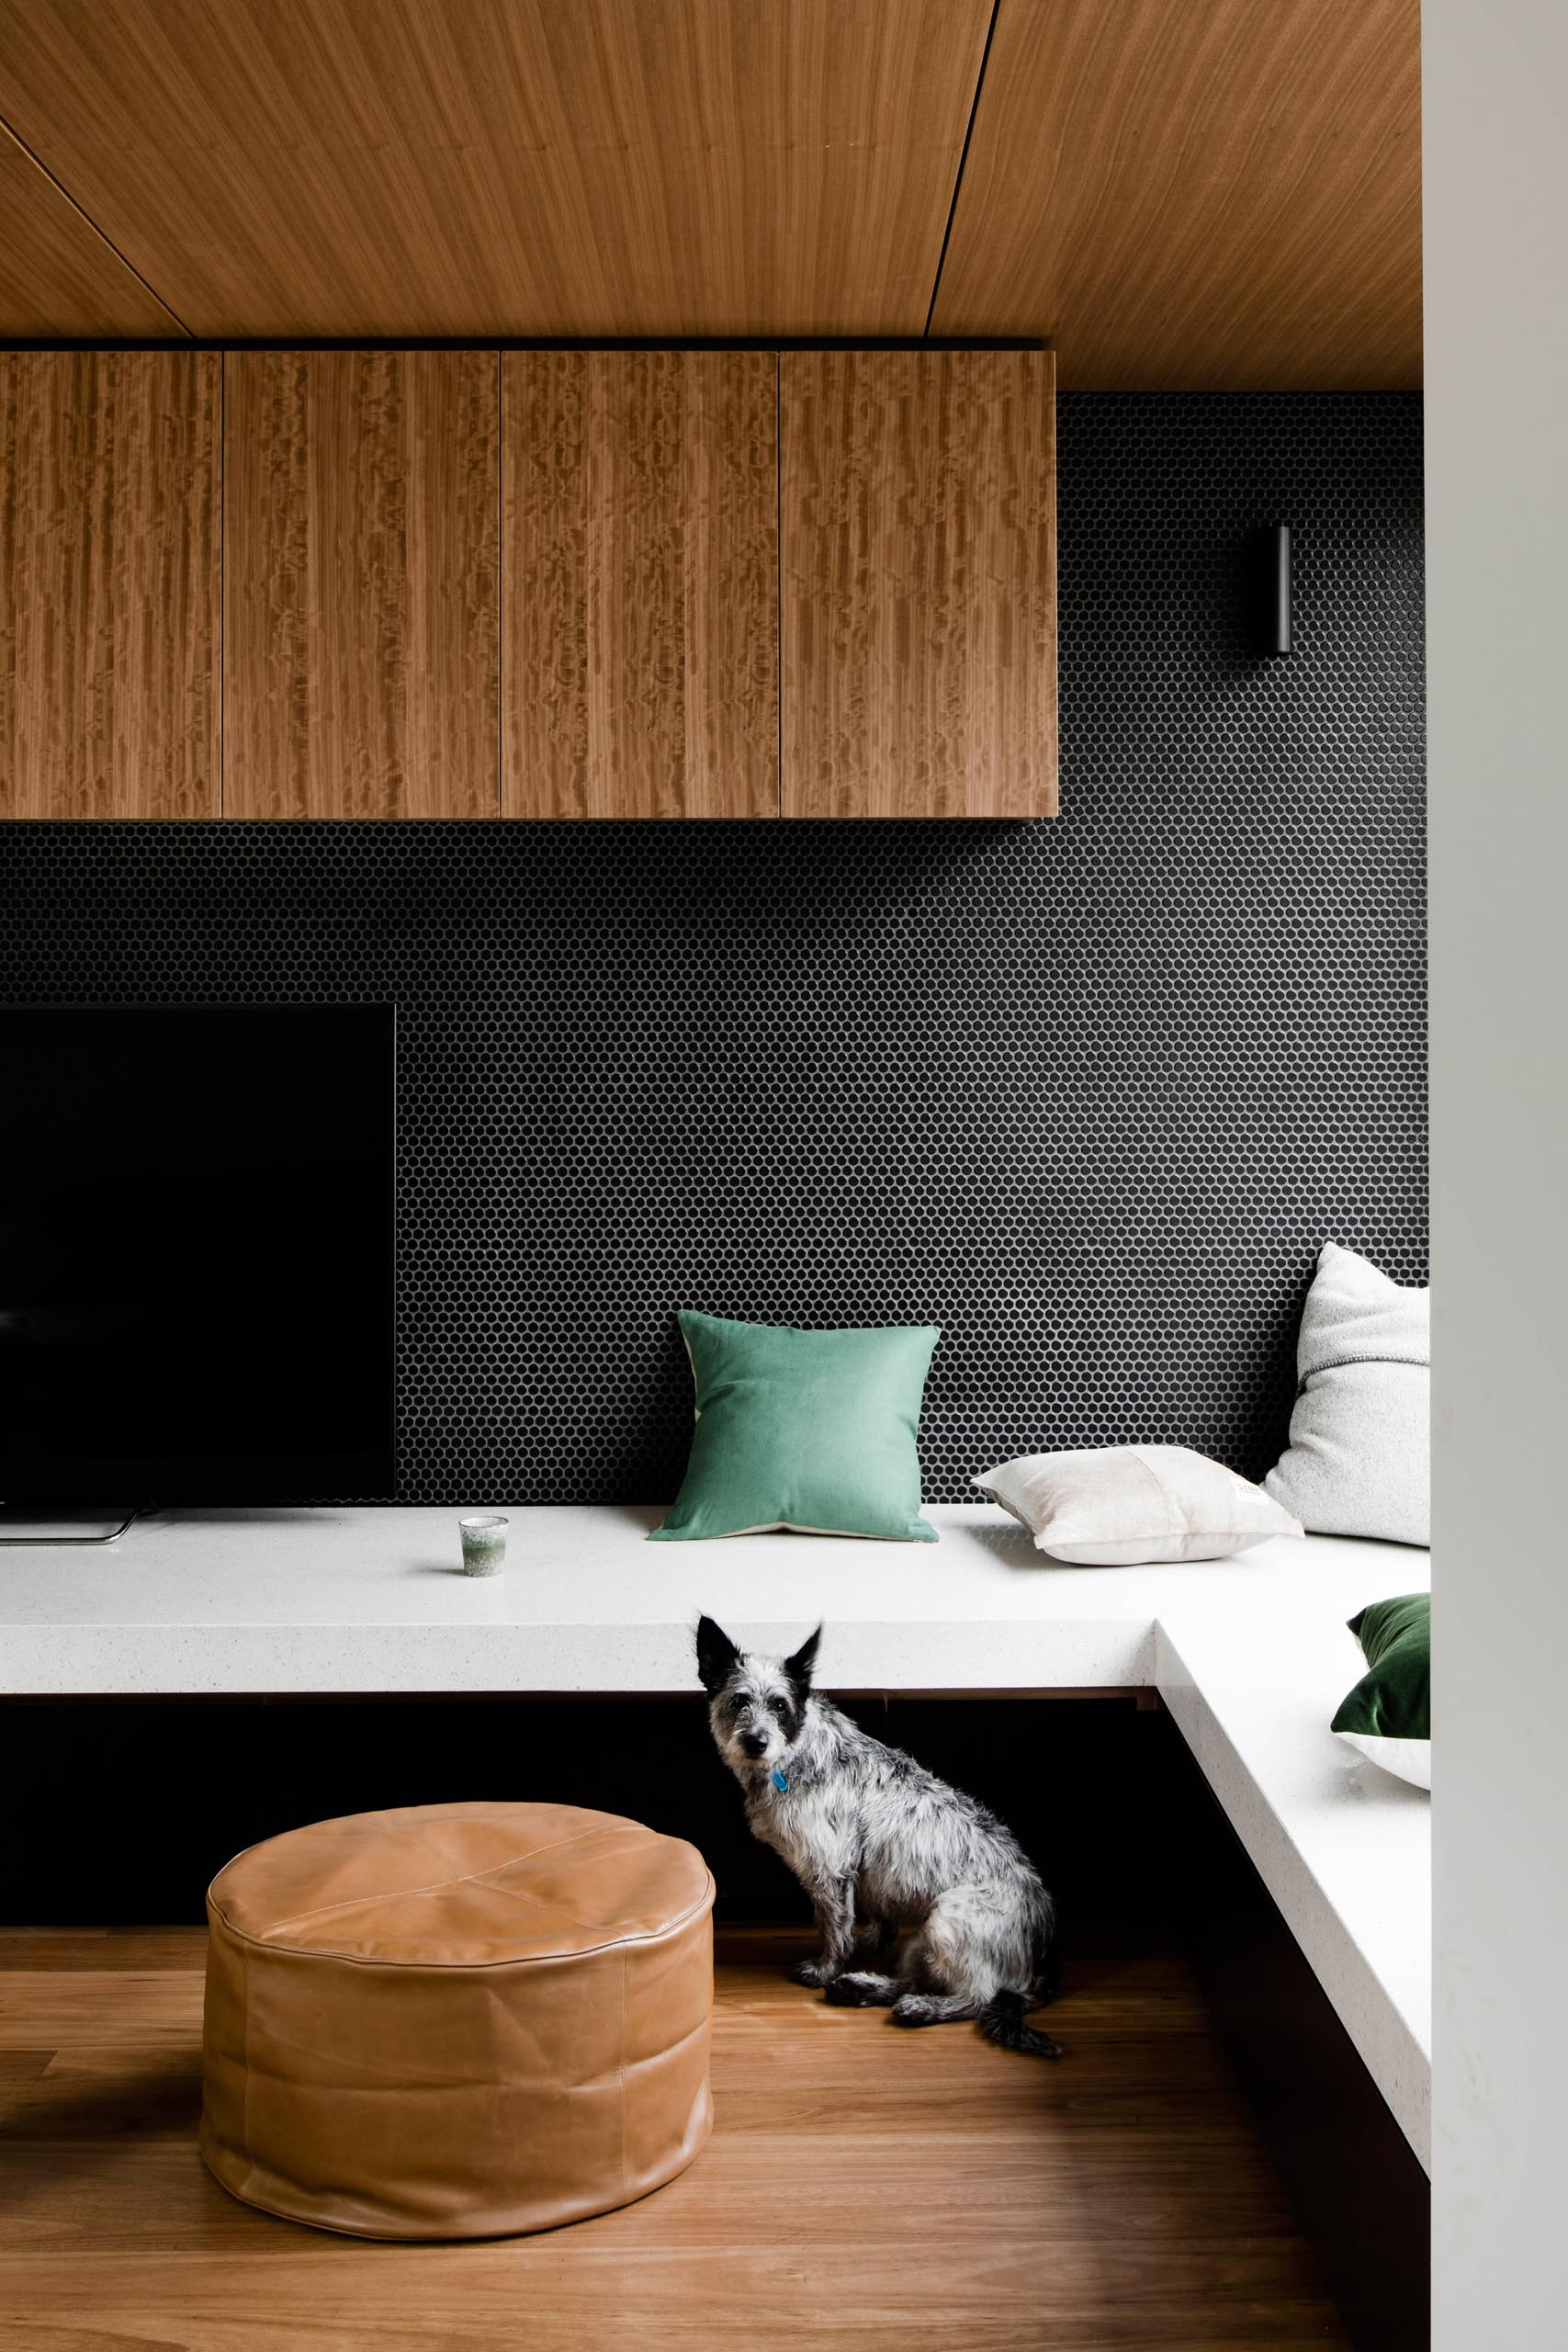 A modern built-in tv stand with a black penny tile backdrop, transforms into a daybed by a window.